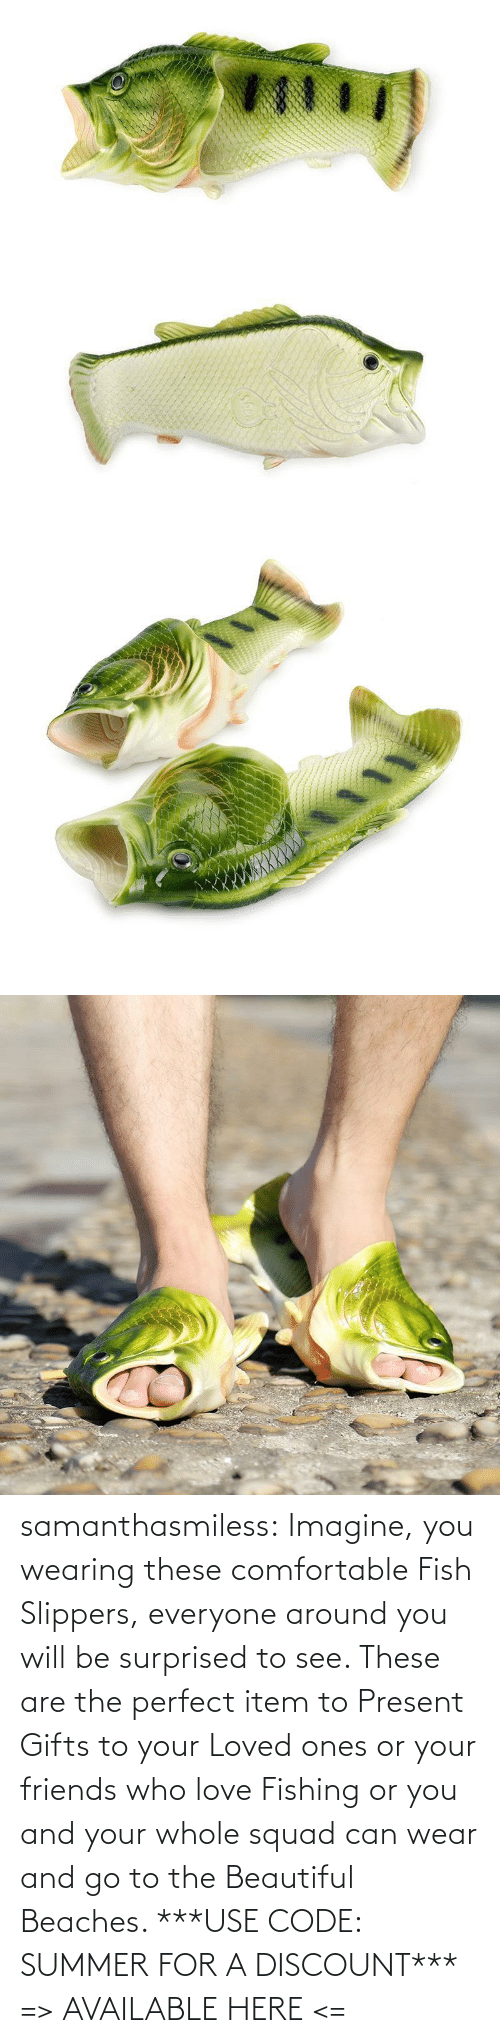 Your: samanthasmiless: Imagine, you wearing these comfortable Fish Slippers, everyone around you will be surprised to see. These are the perfect item to Present Gifts to your Loved ones or your friends who love Fishing or you and your whole squad can wear and go to the Beautiful Beaches.  ***USE CODE: SUMMER FOR A DISCOUNT*** => AVAILABLE HERE <=